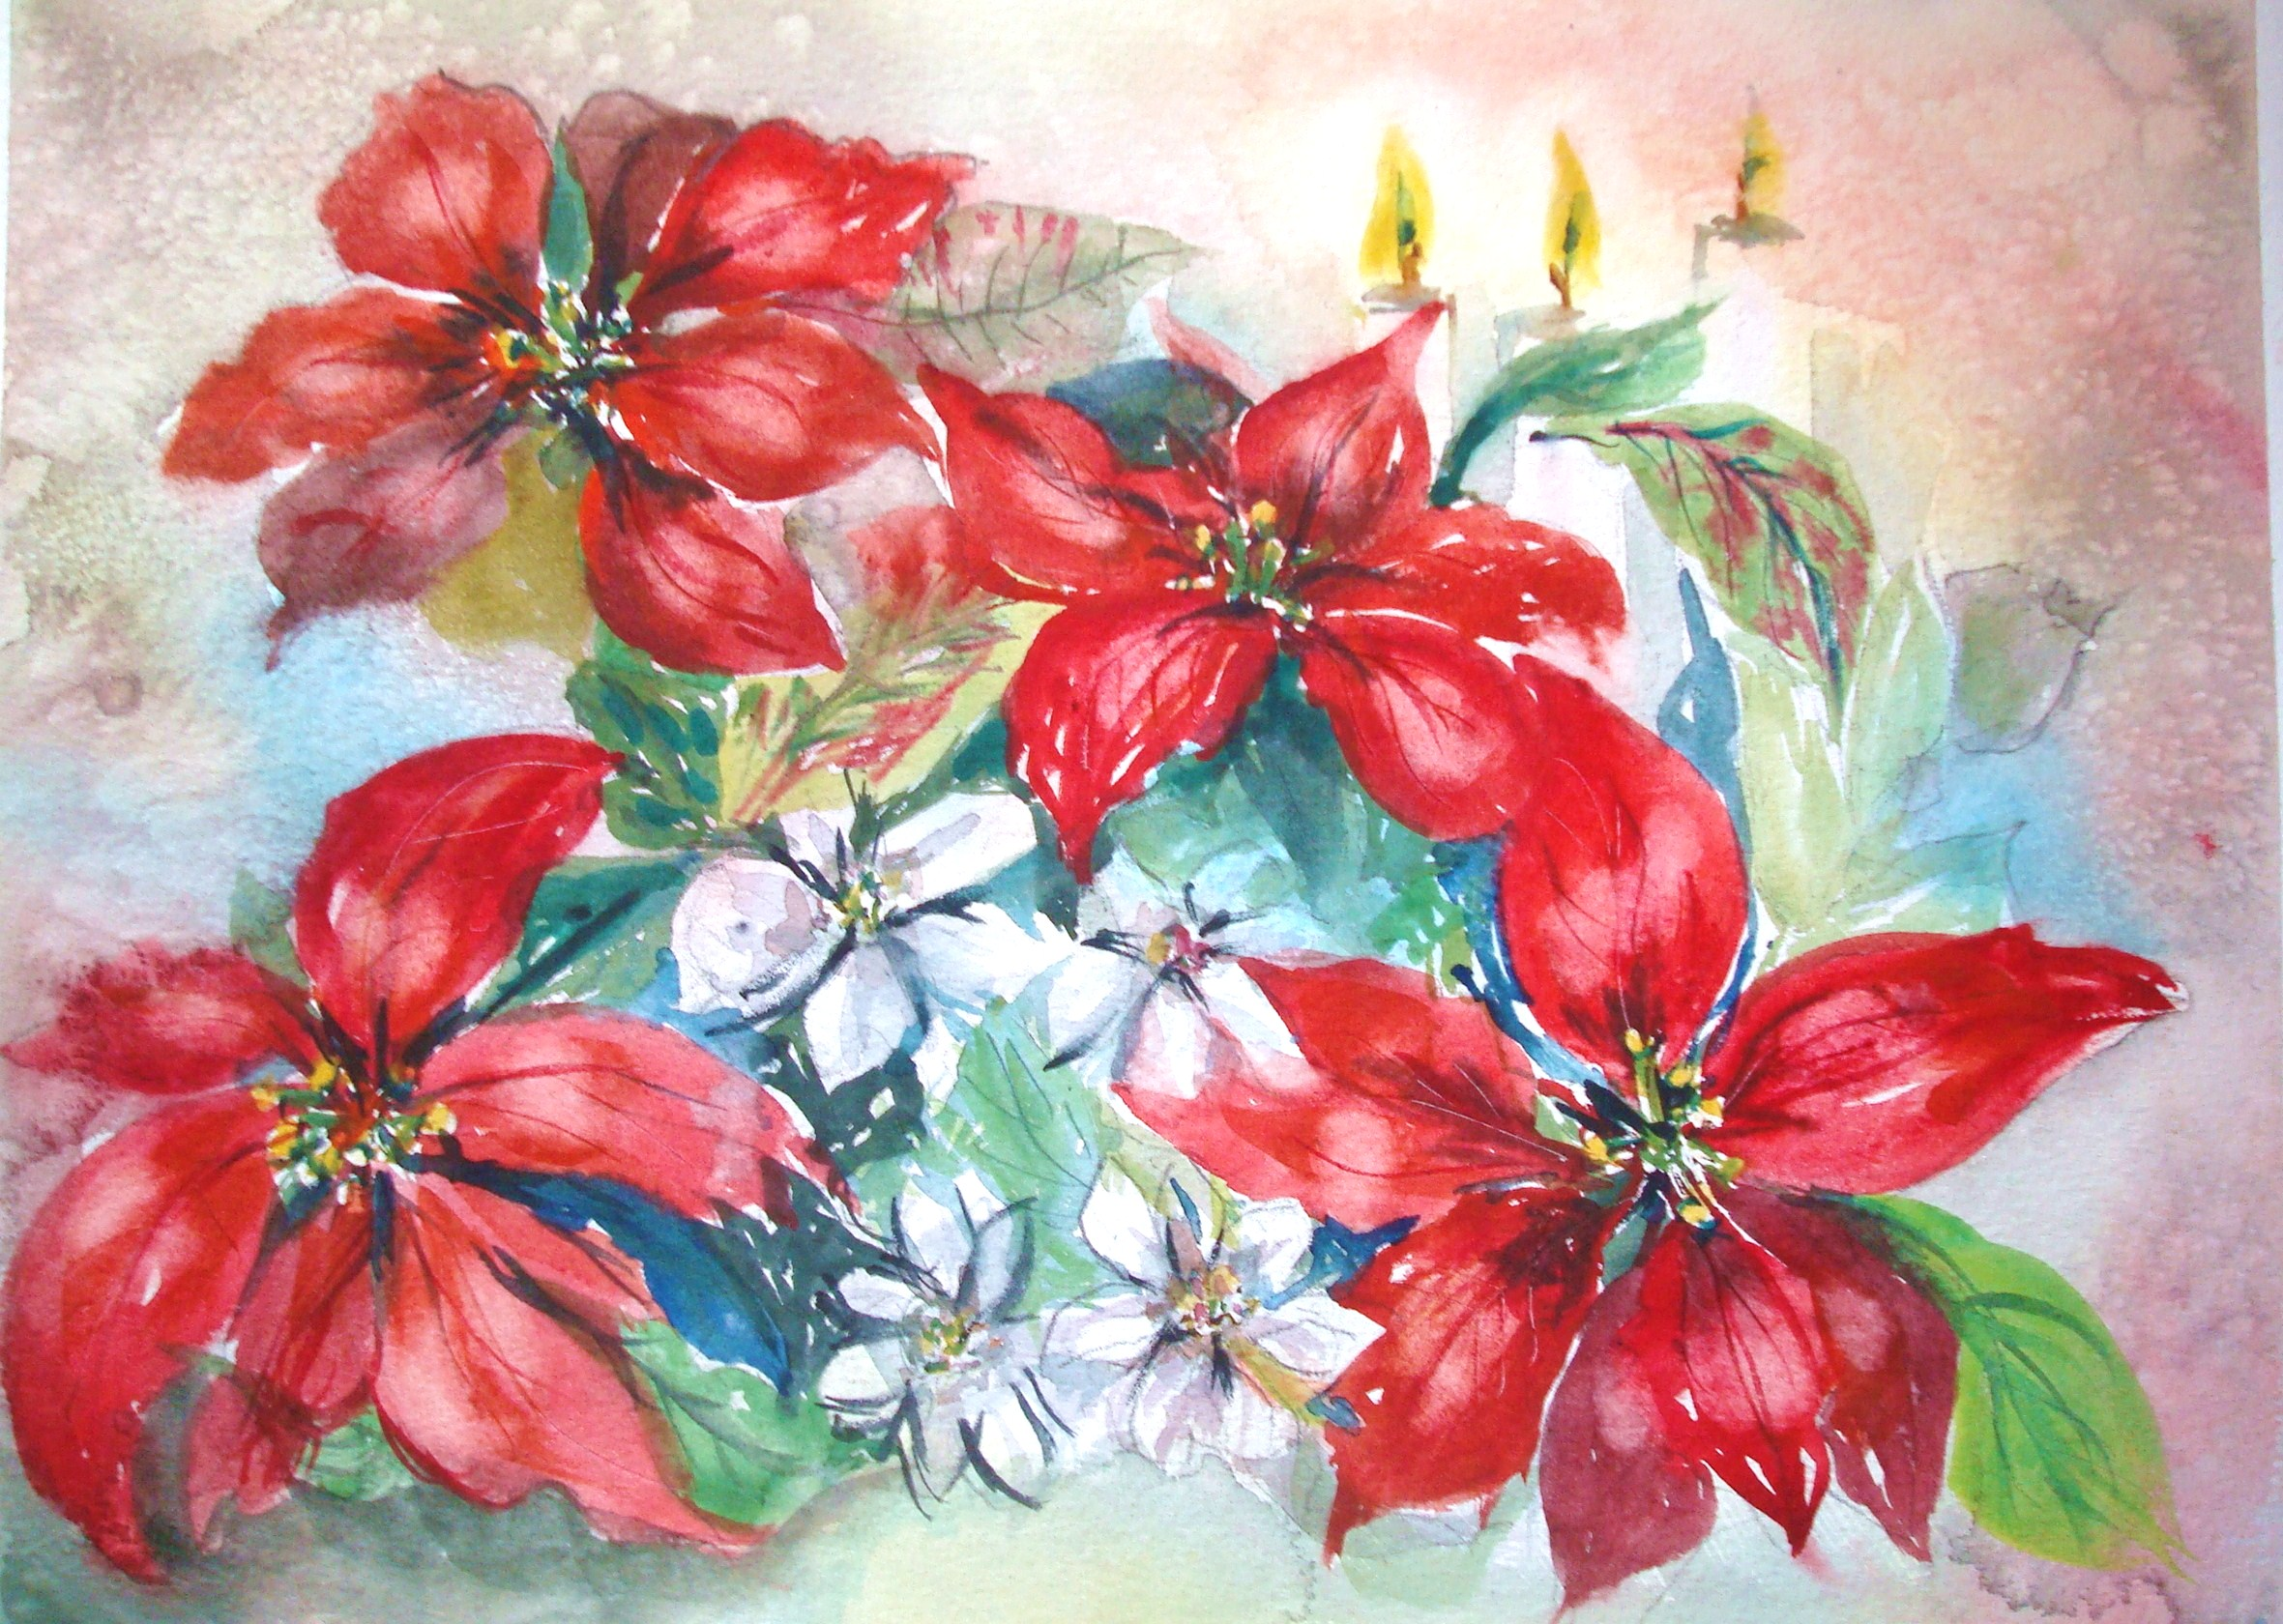 2361x1680 How To Paint Red Poinsettias In Watercolor (With Pictures)